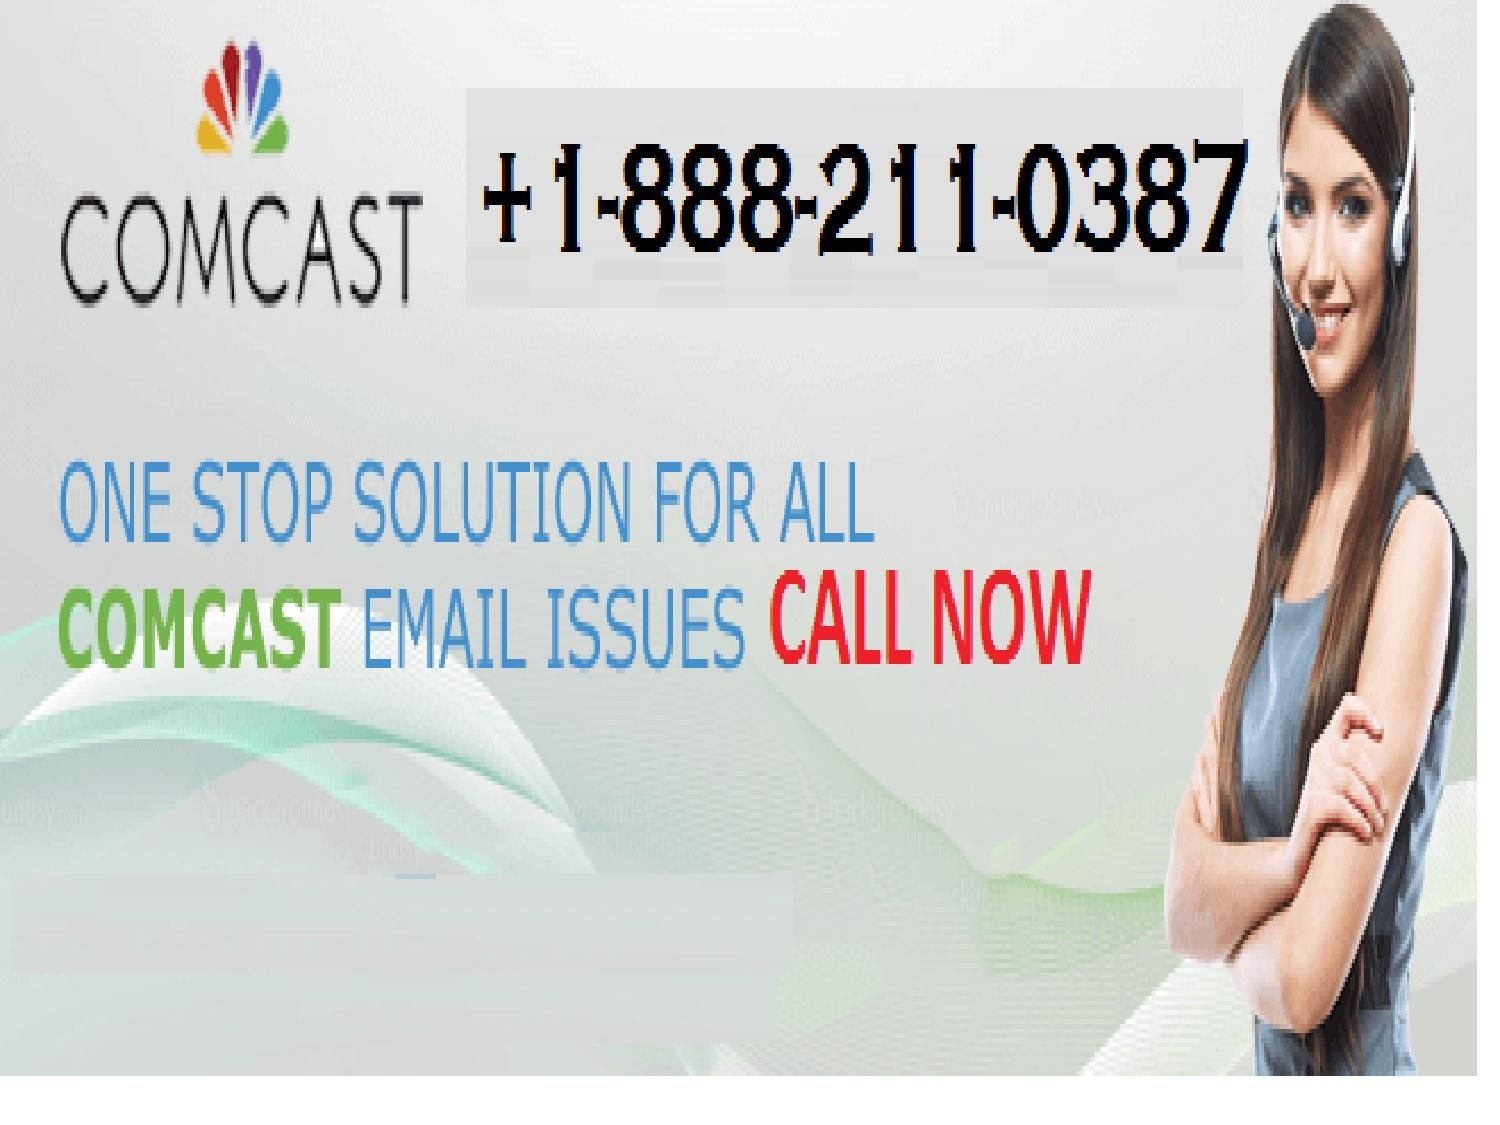 Call +1 (888) 211 0387 Comcast Email support Number and